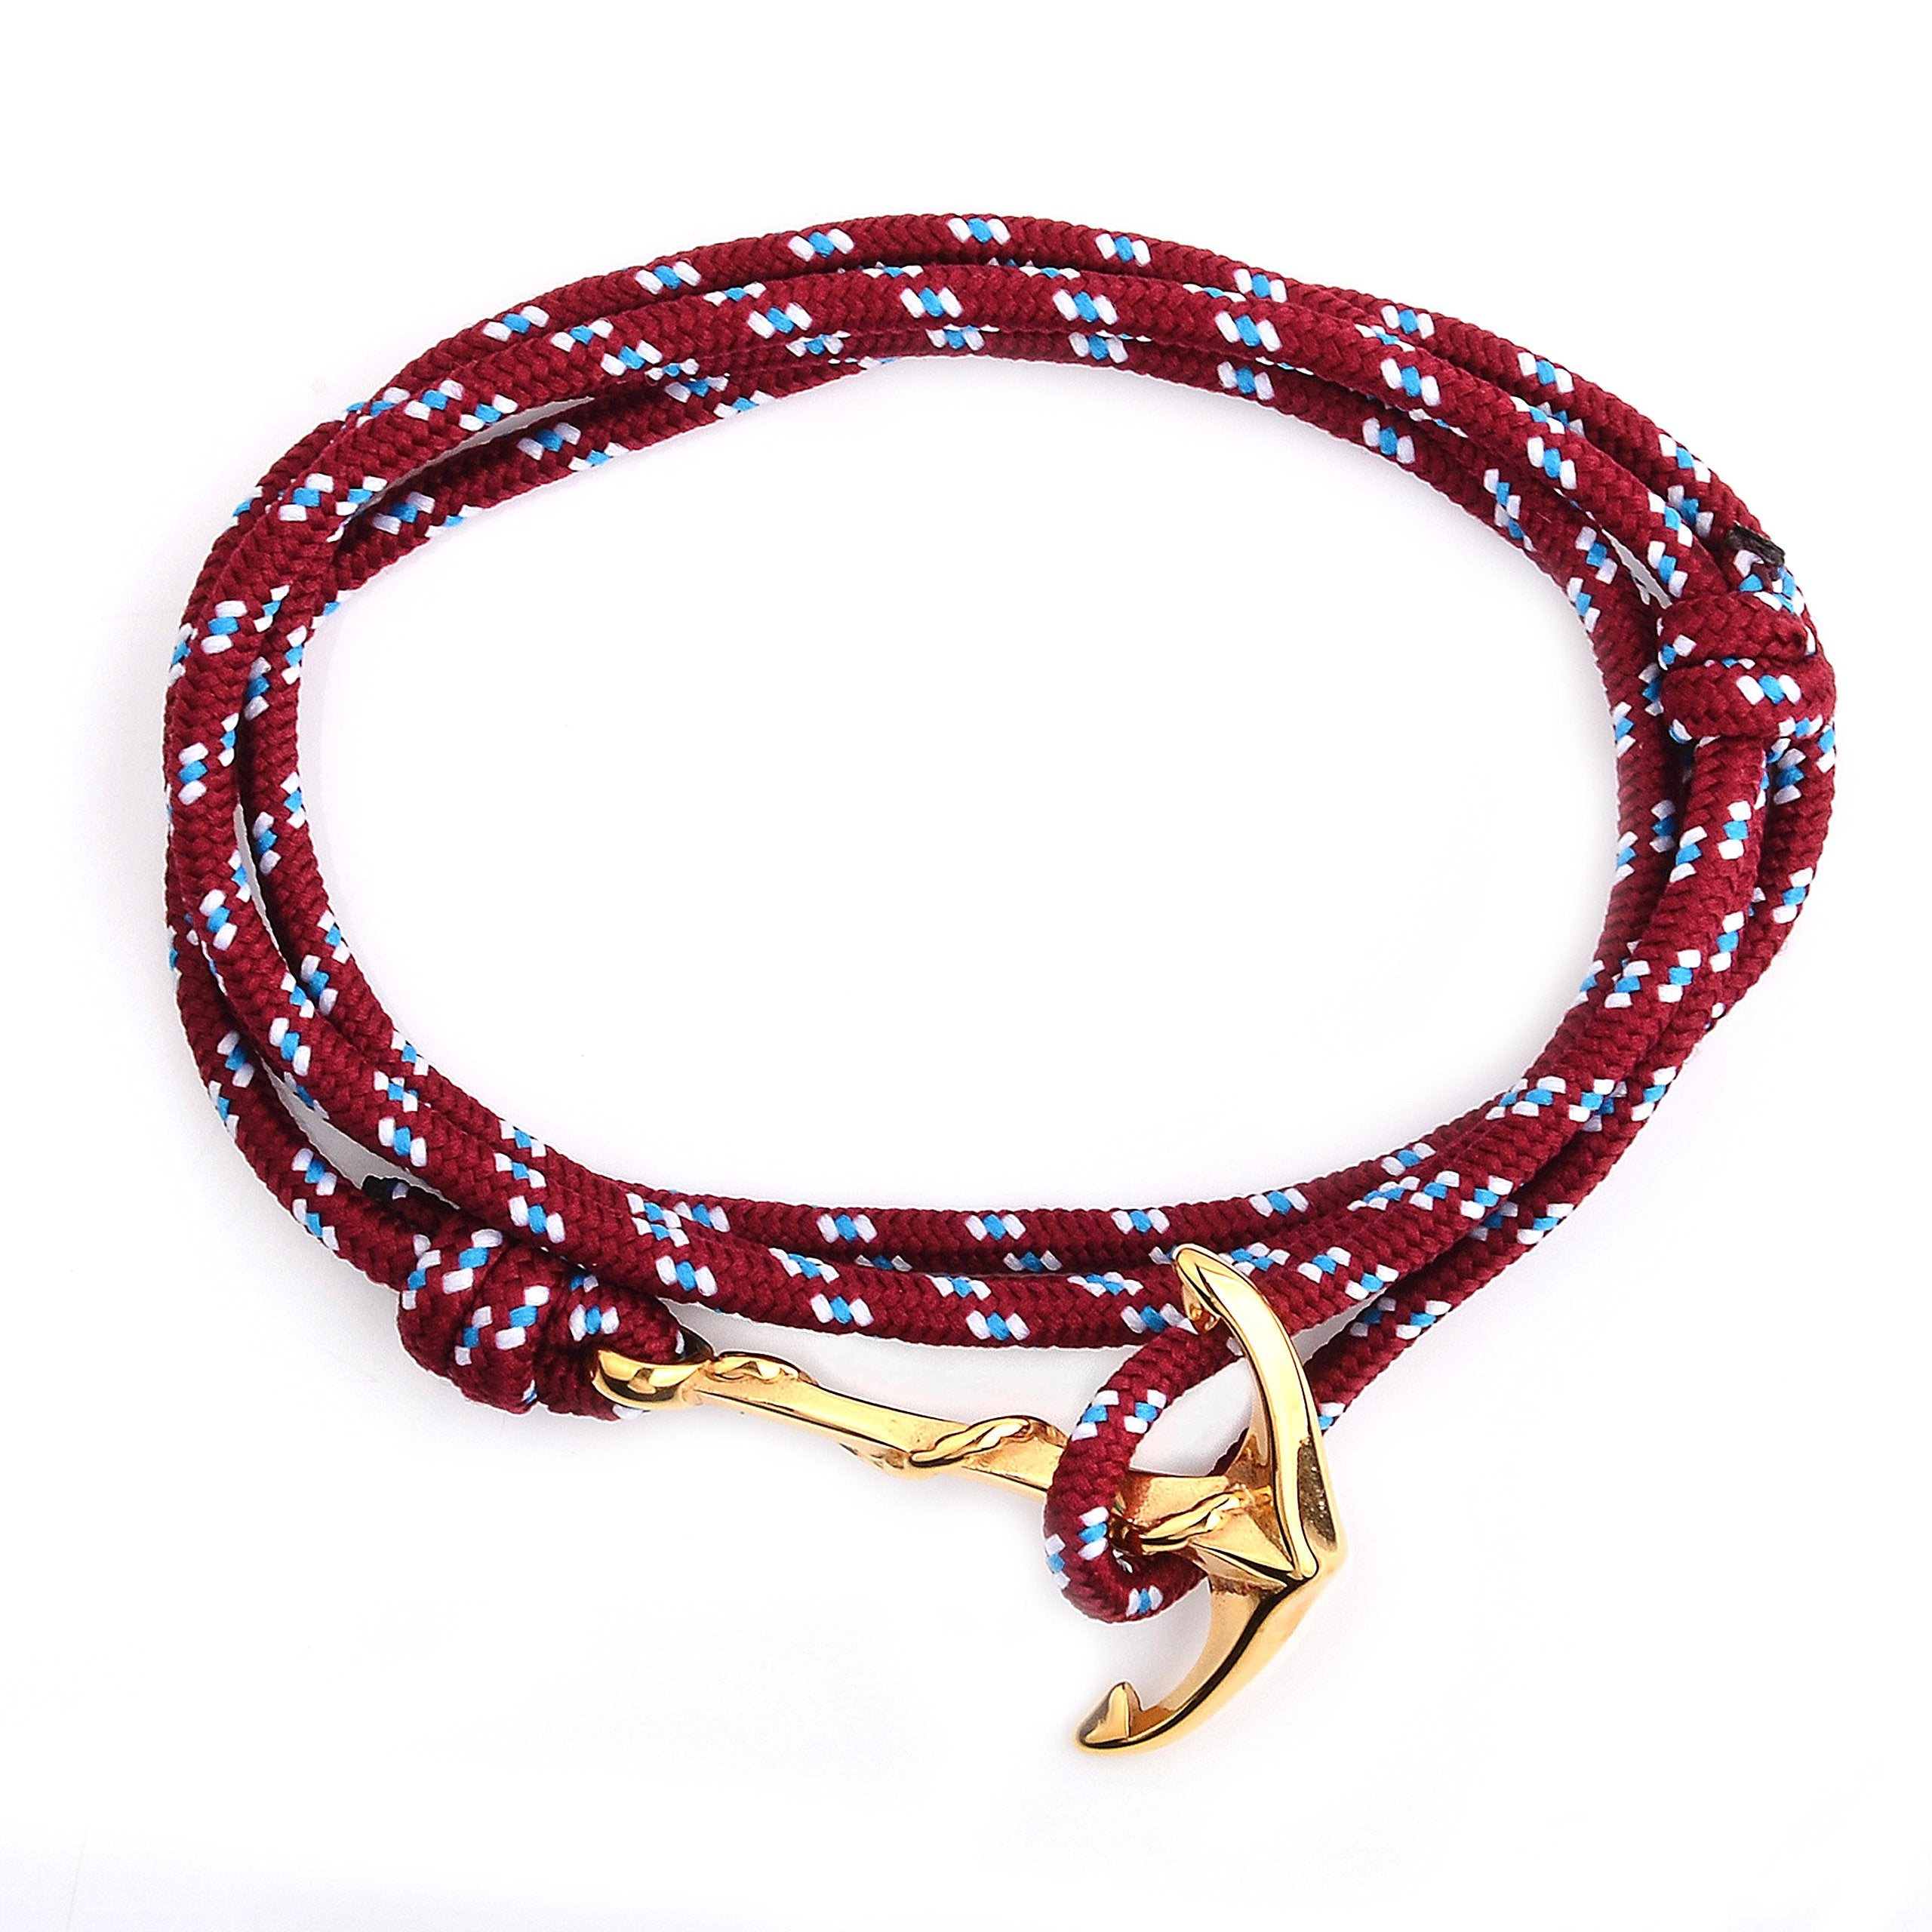 Crucible Jewelry Unisex Adult Gold Plated Polished Stainless Steel Anchor Clasp Red Rope Adjustable Wrap Bracelet (3mm Wide), One Size